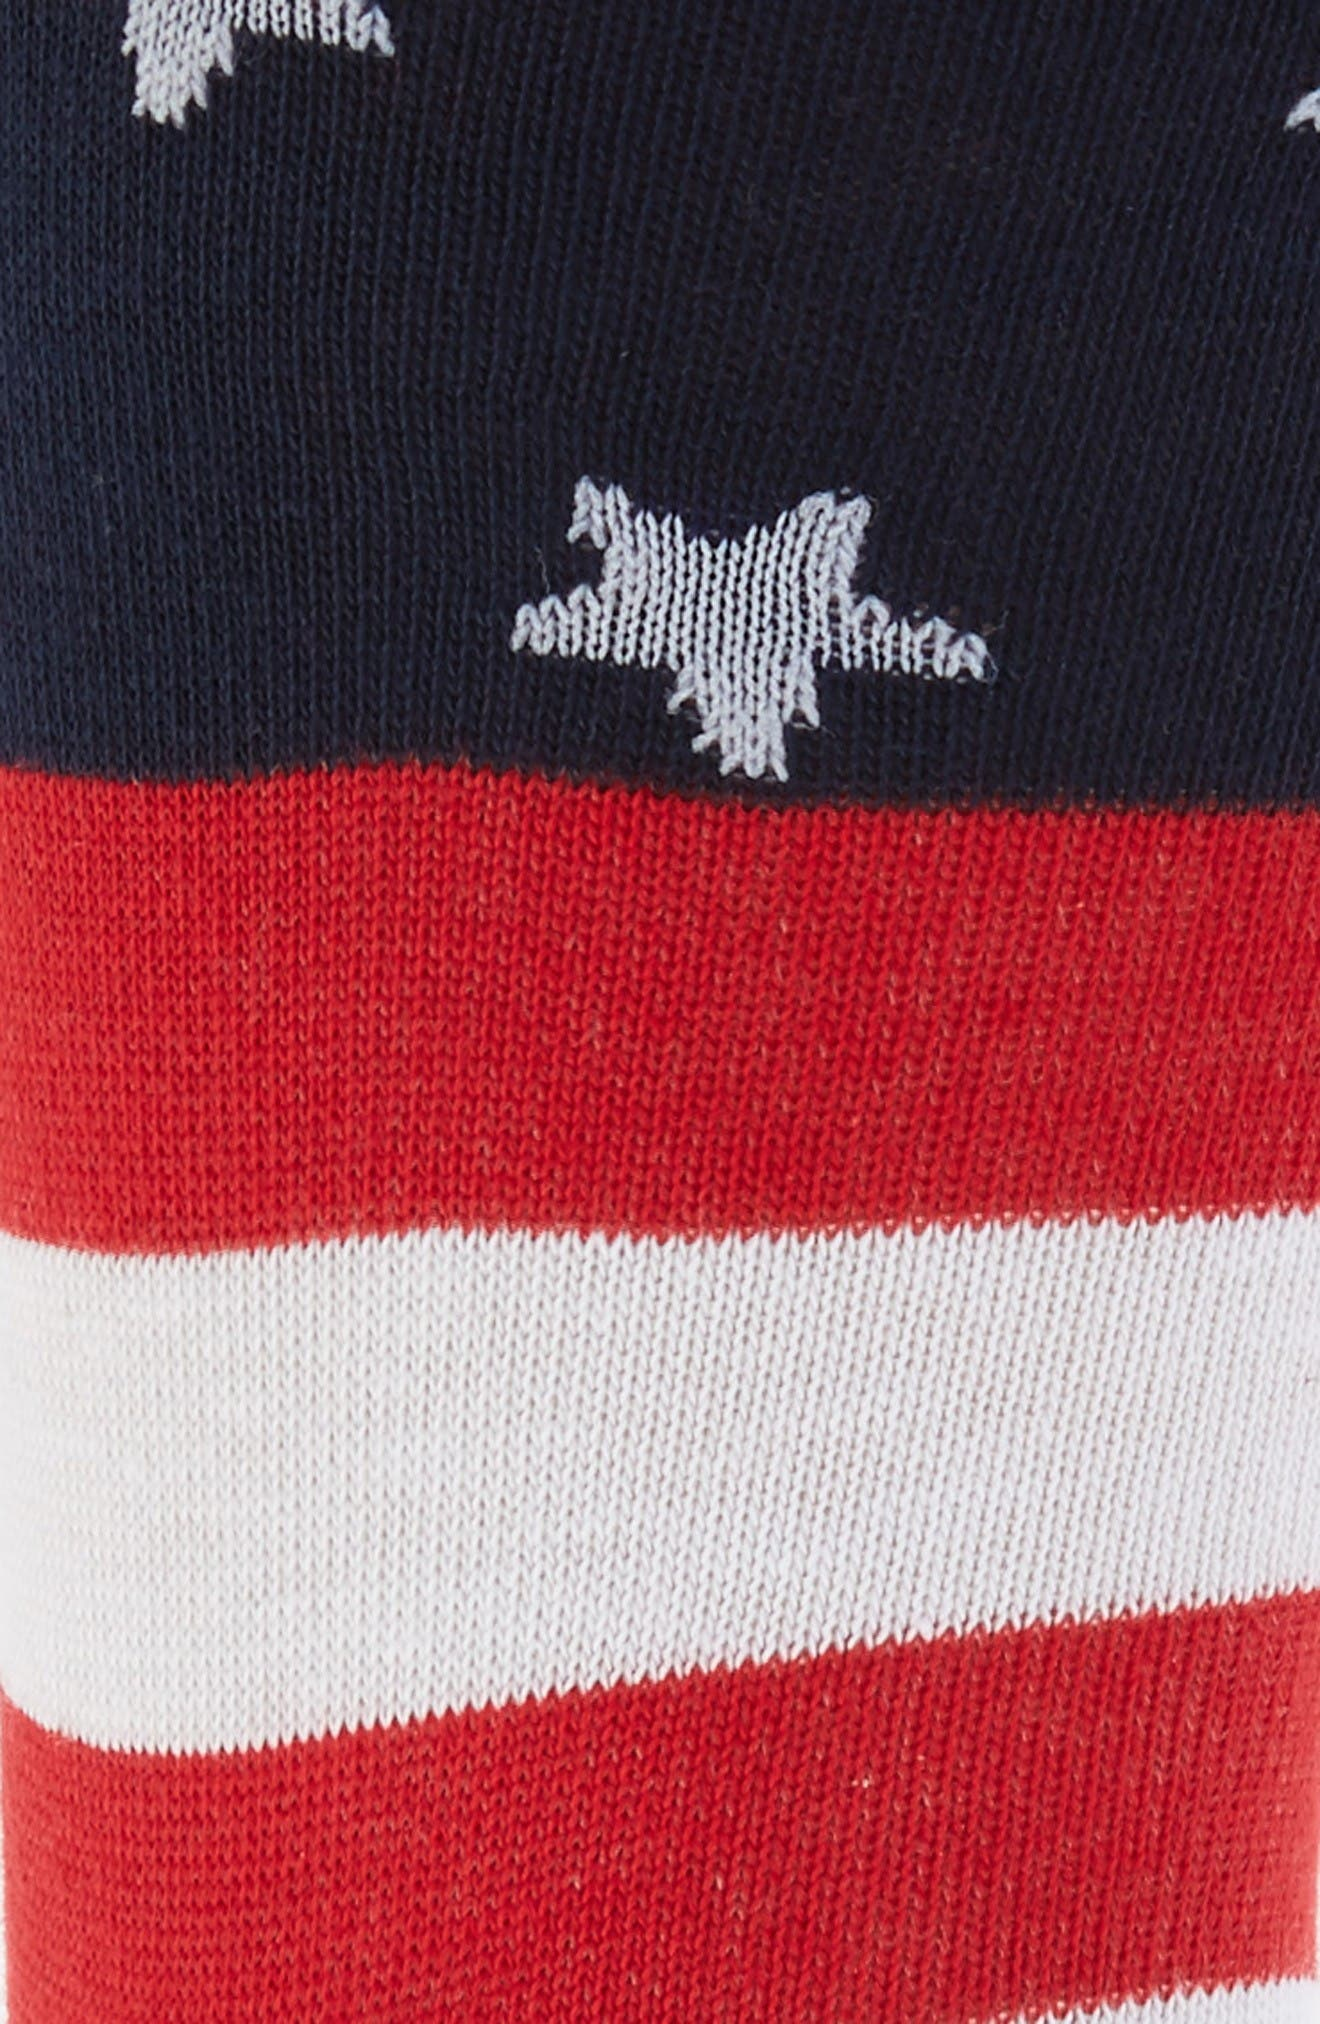 Alternate Image 2  - Lorenzo Uomo Americana Crew Socks (3 for $30)